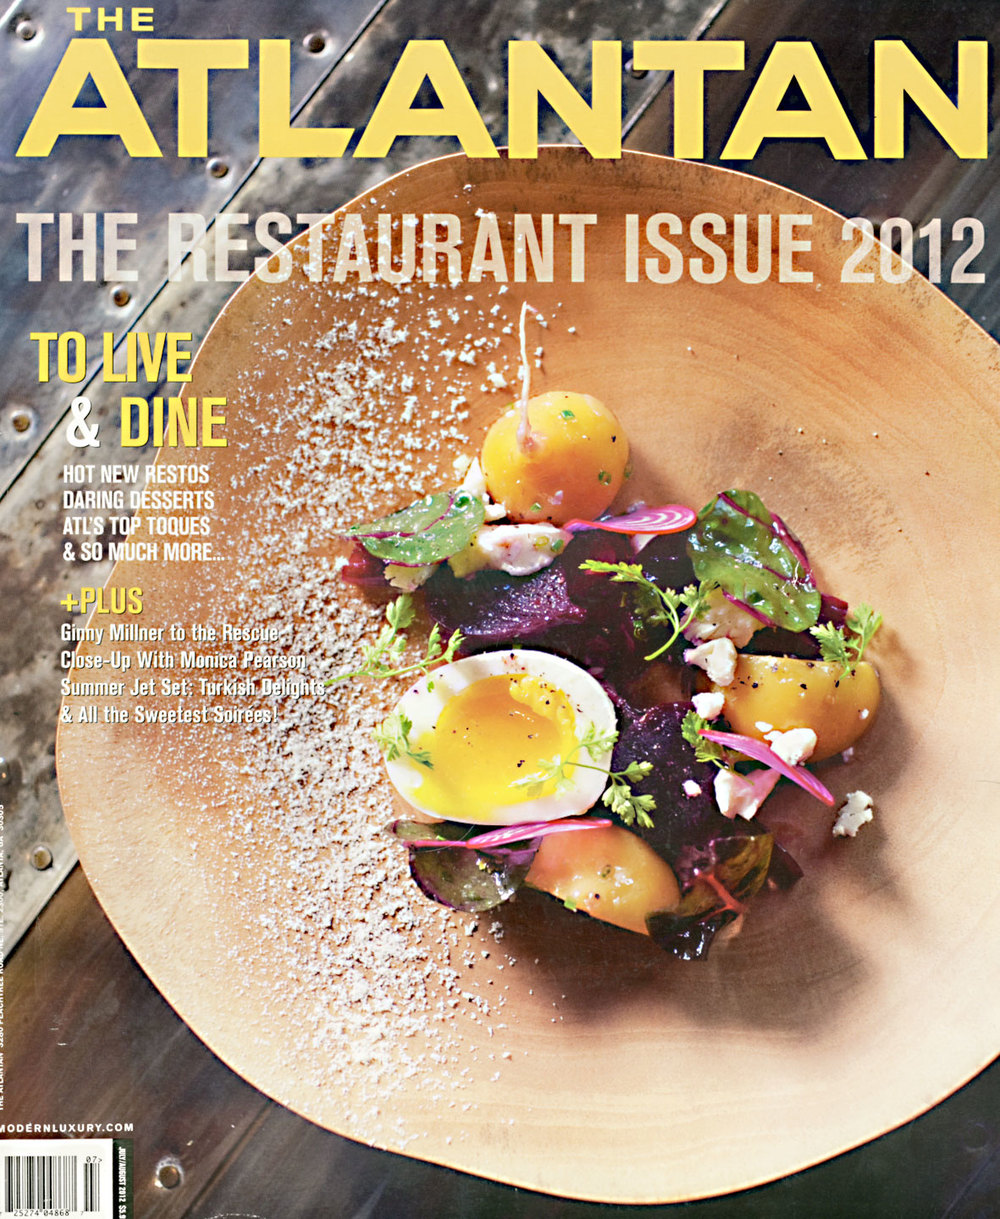 The ATLANTAN  July 2012